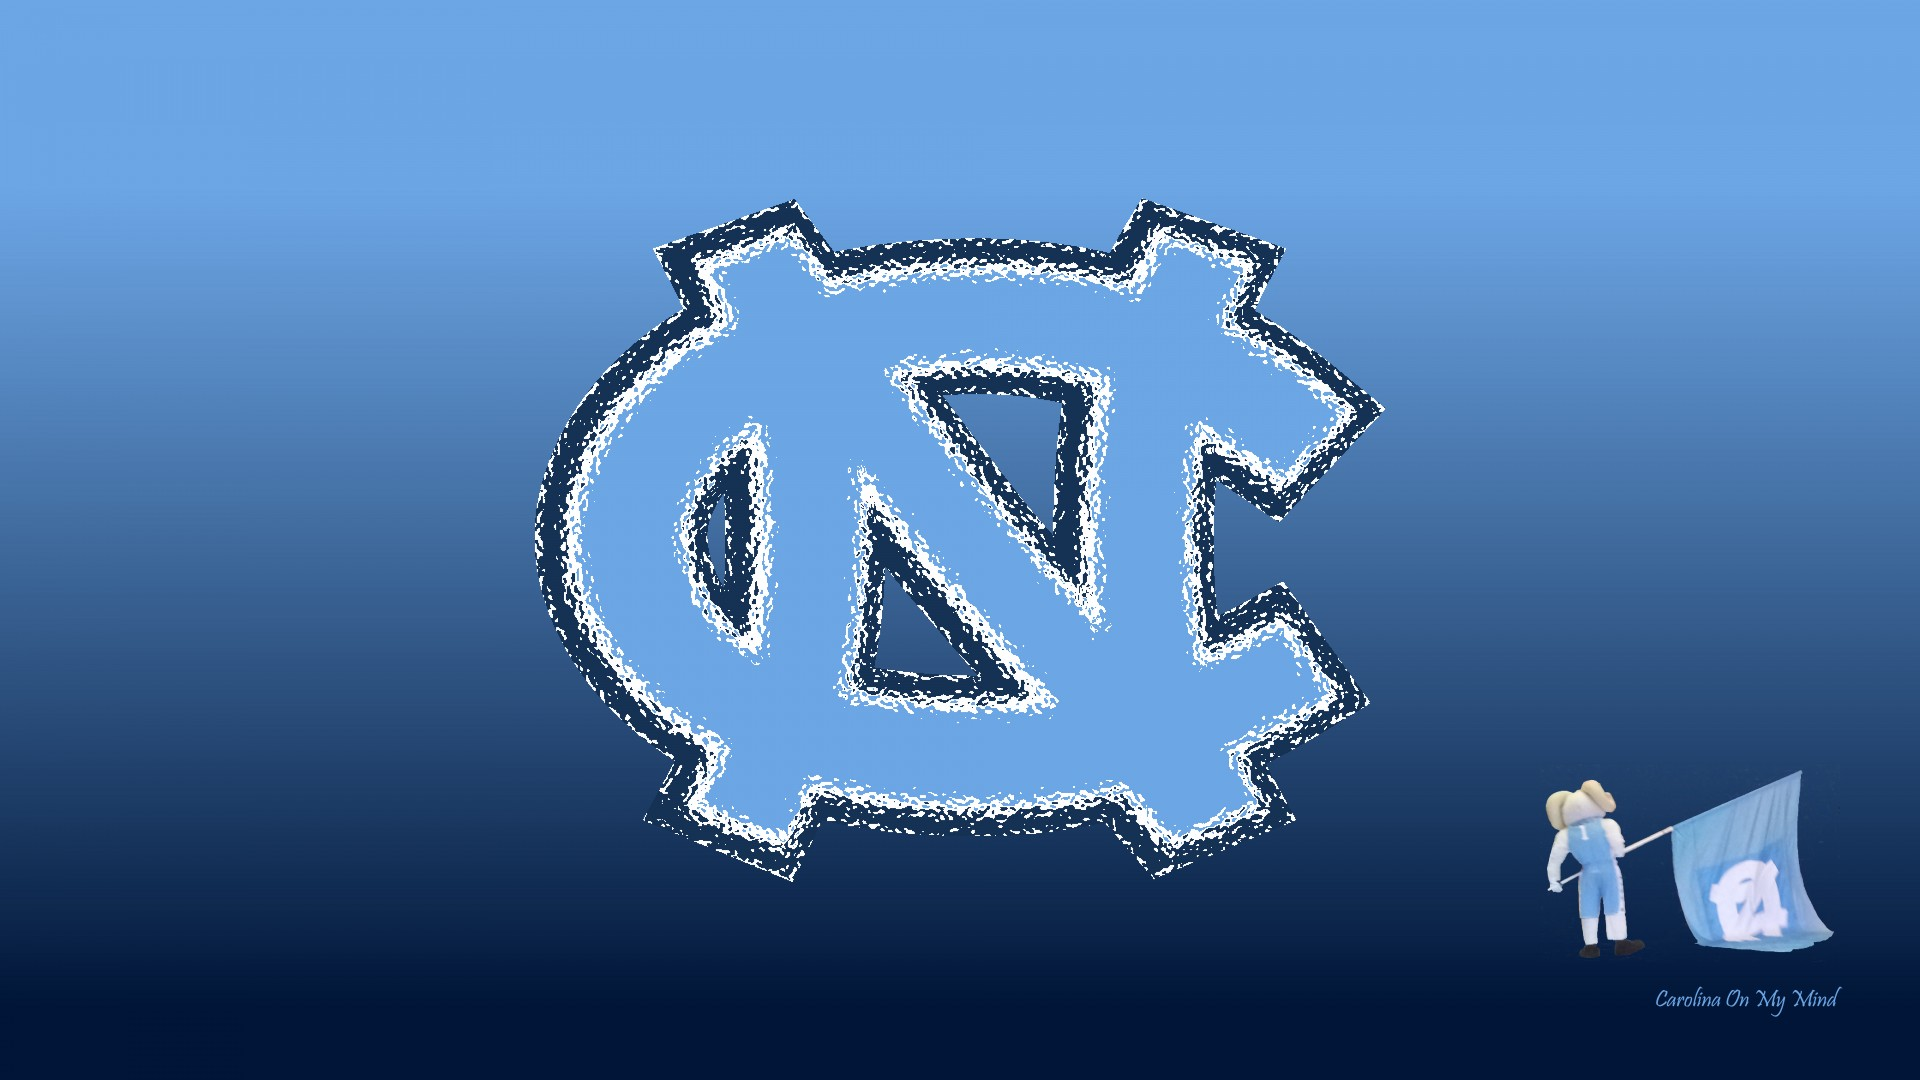 UNC Wallpaper   Glass NC with Rameses and Flag on Blue Gradient 1920 x 1920x1080